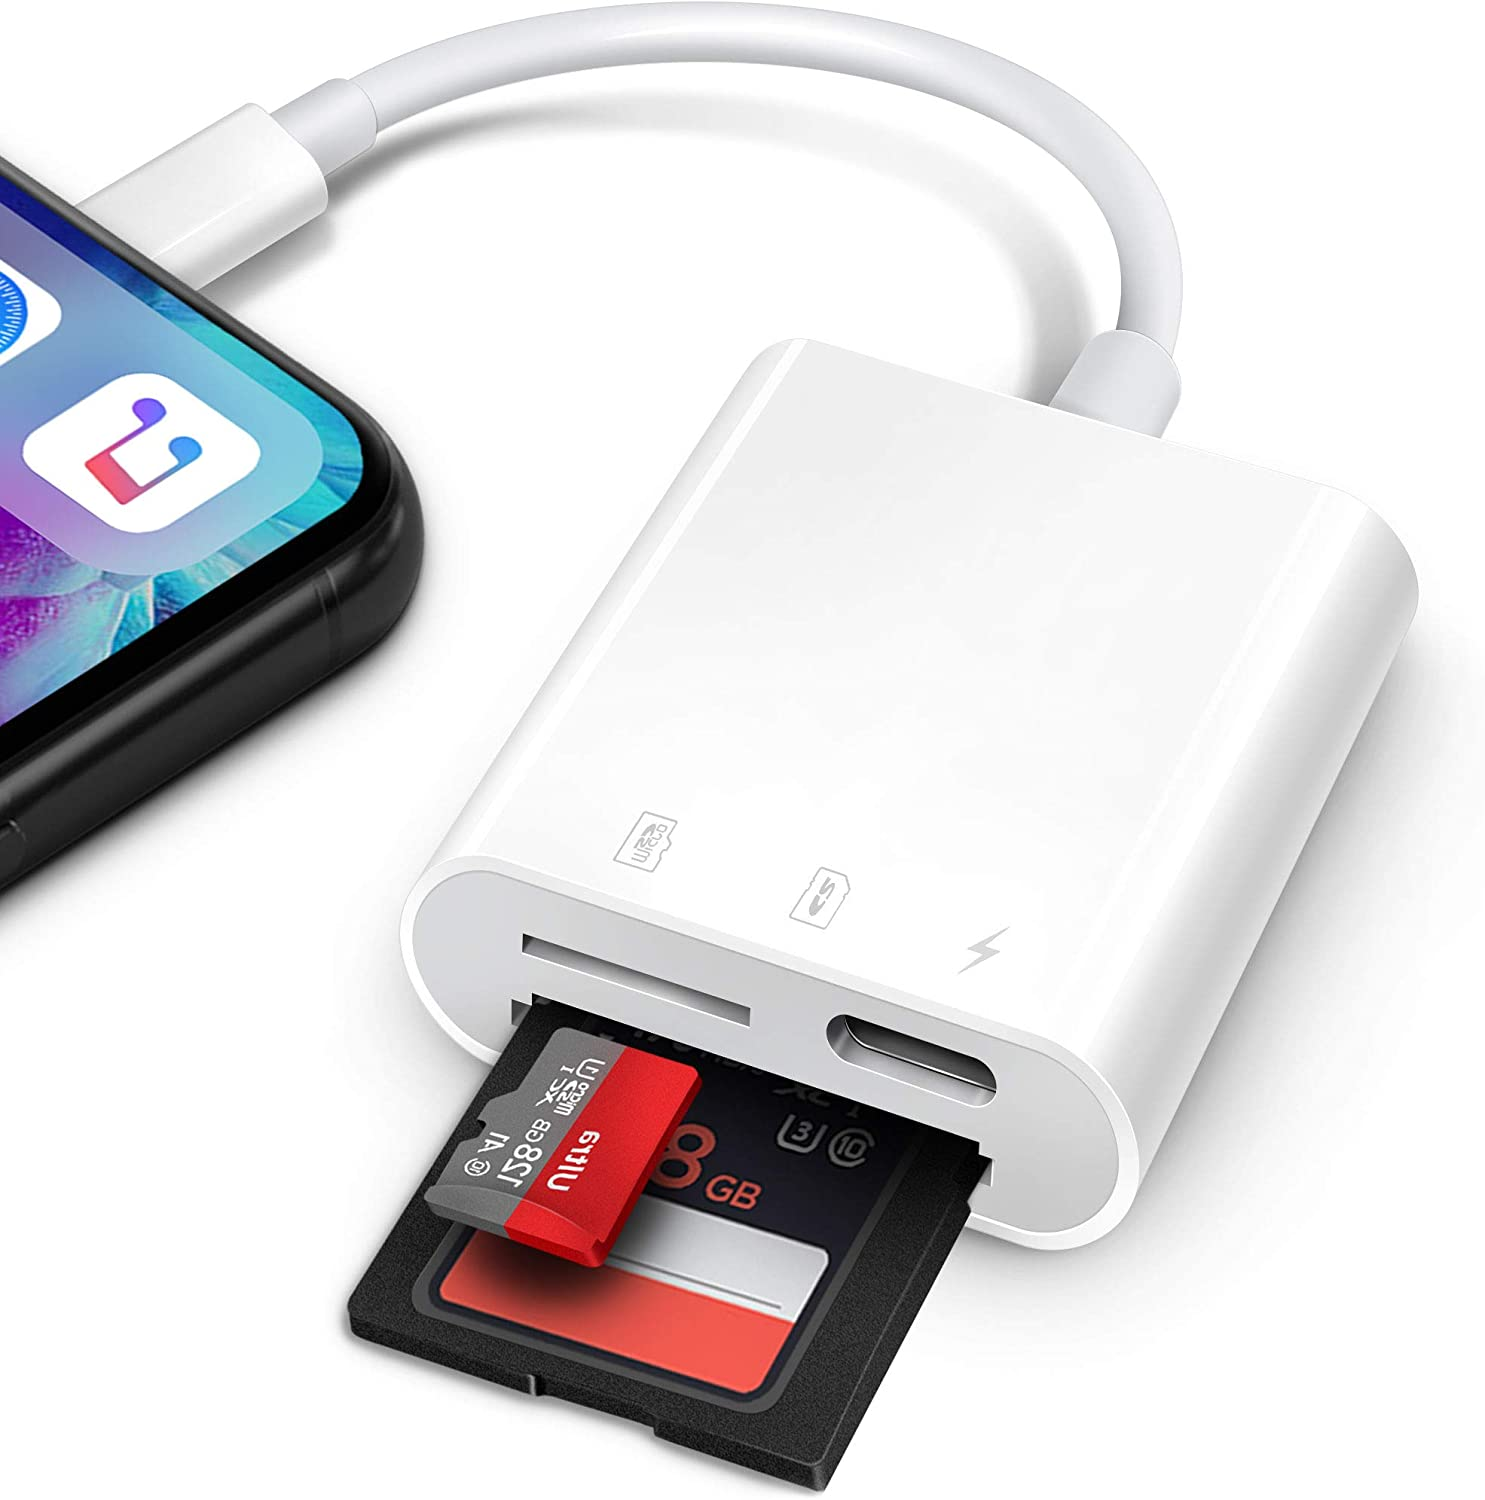 SD Card Reader for iPhone iPad, AkHolz 2 in 1 SD Card Reader for iPhone iPad Camera Card Viewer Reader for Trail Game Camera DSLR Camera Dash Cams SD Card Reader, Portable No App Required